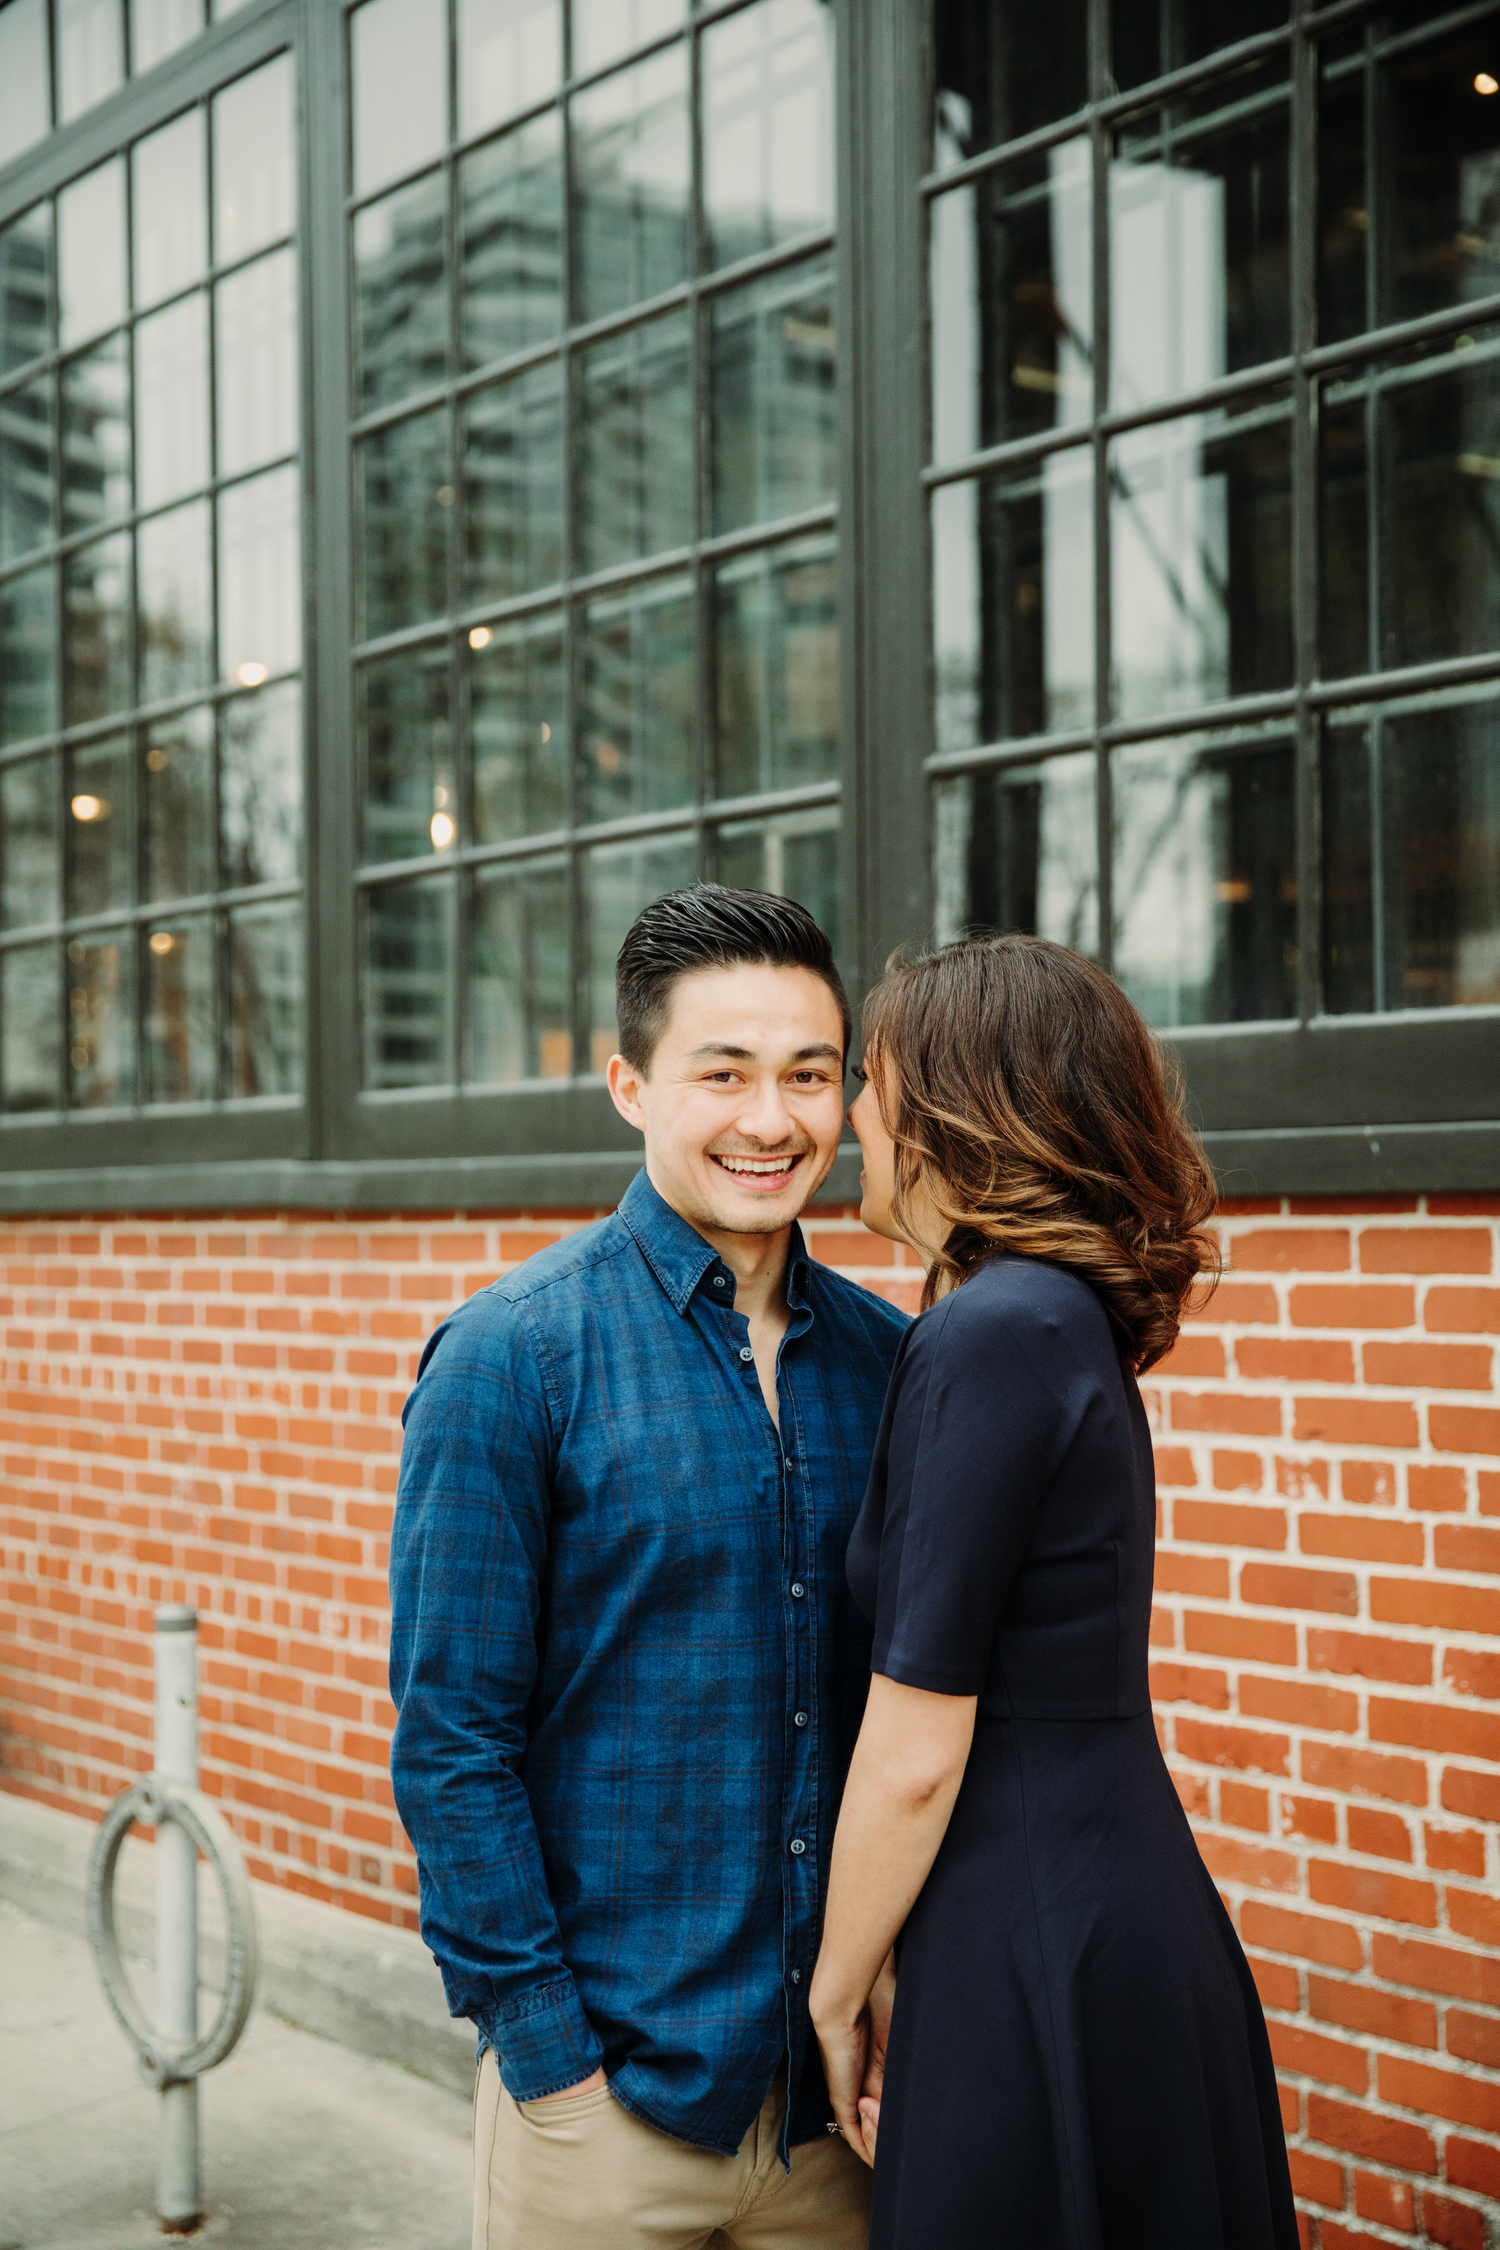 steamwhistle engagement shoot toronto